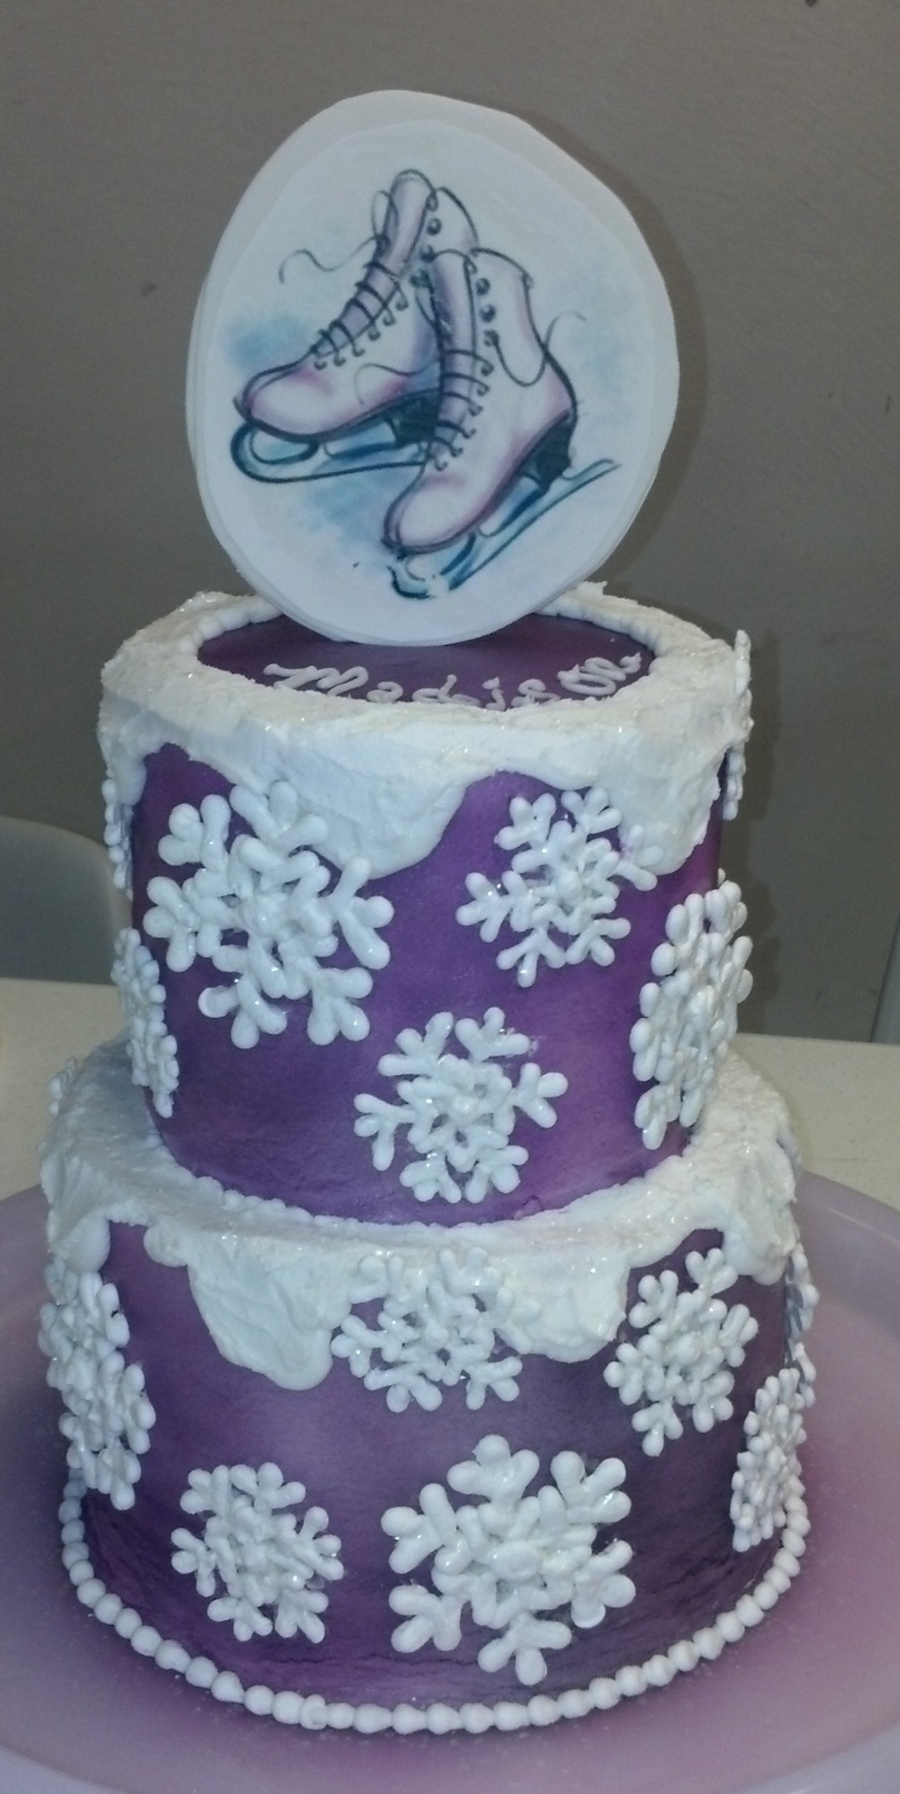 Ice Skating on Cake Central